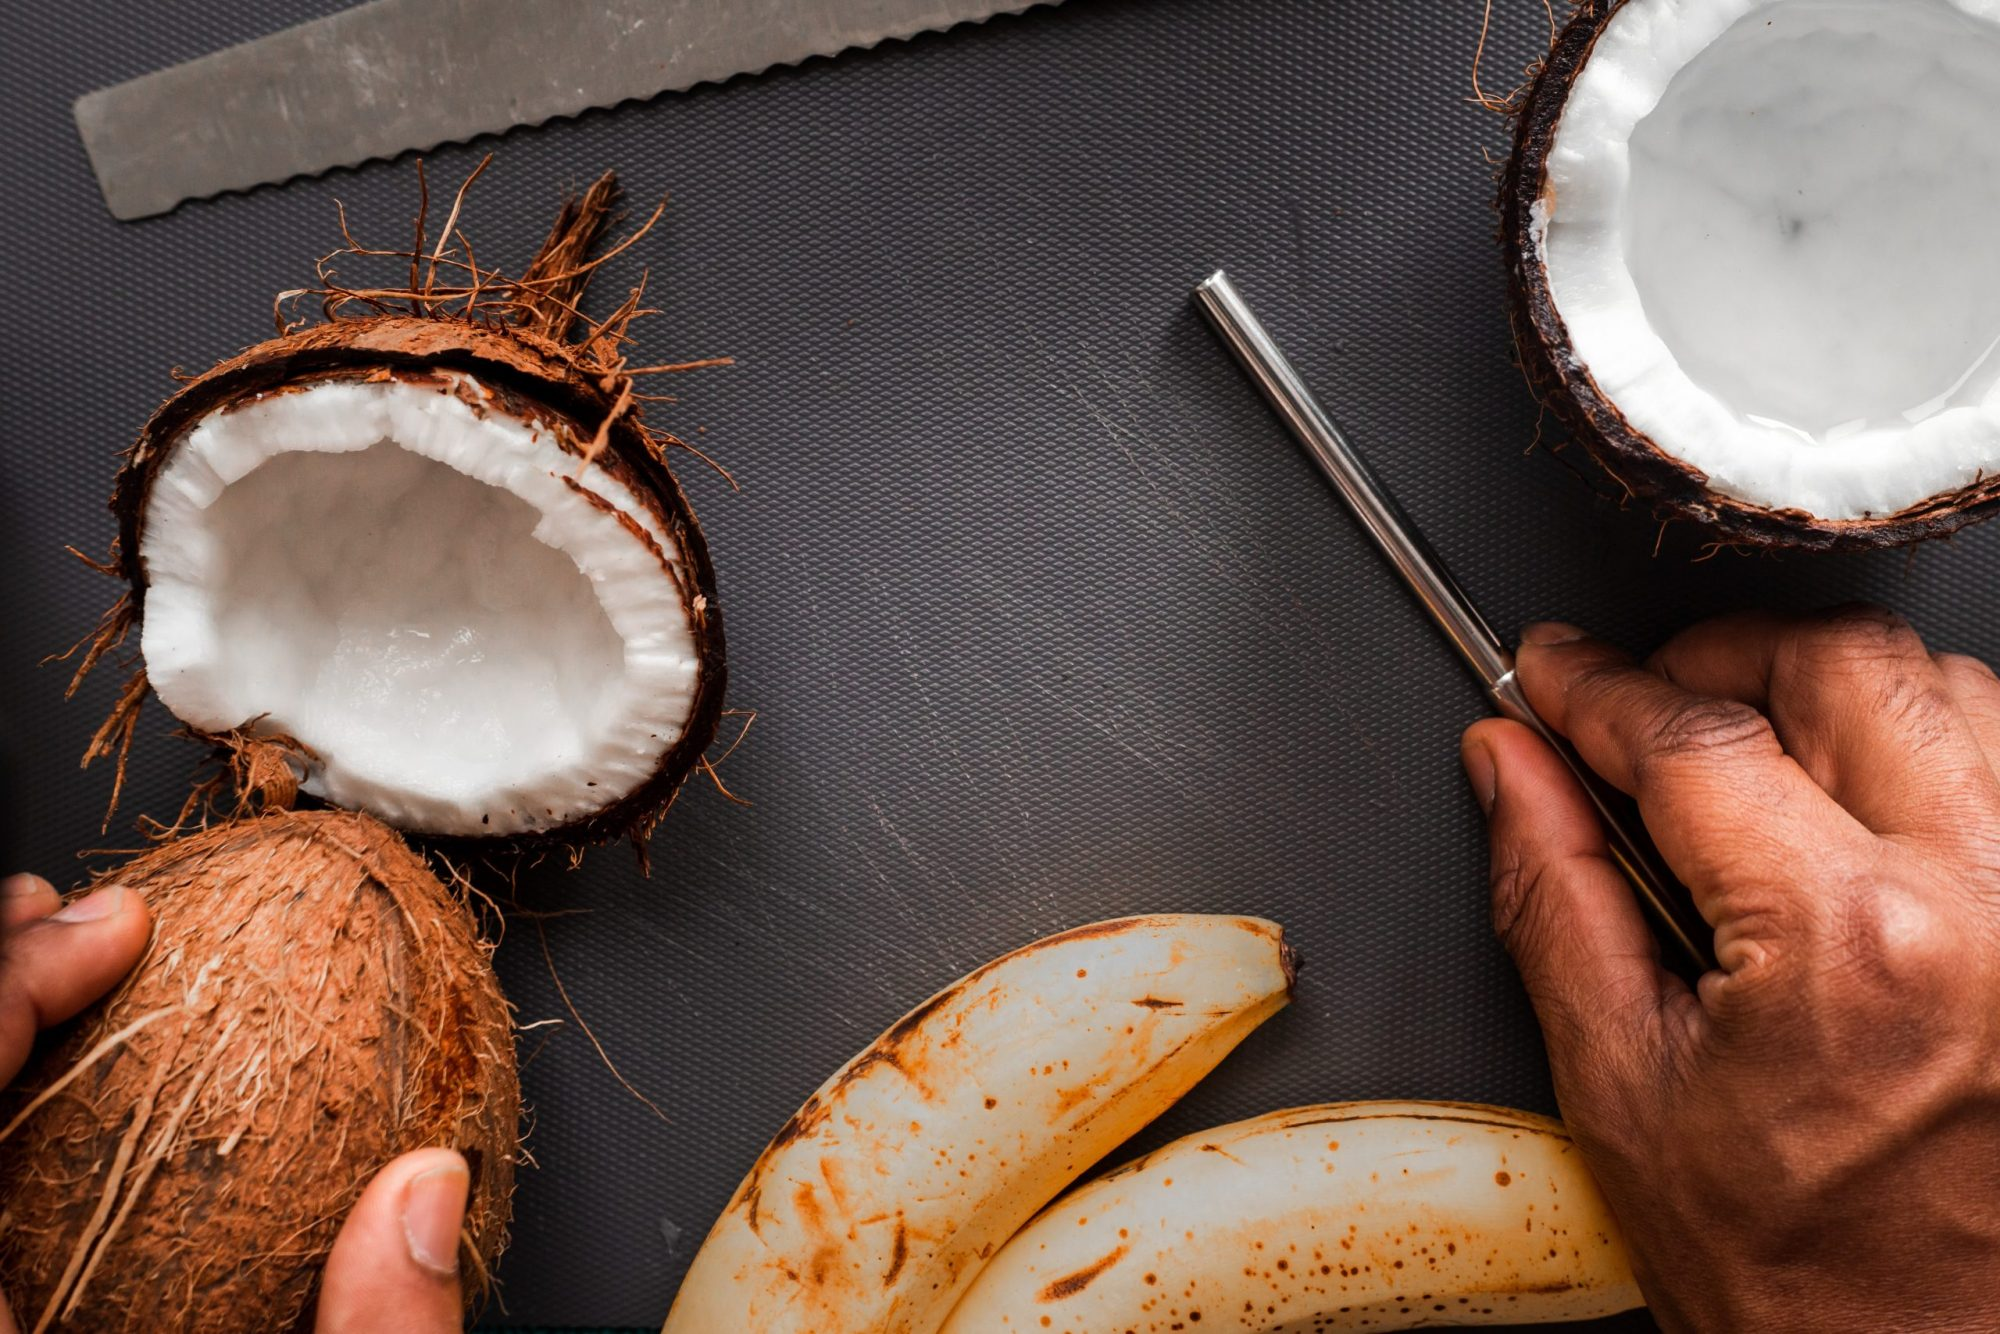 coconut fiber for dipping alternatives or chewing tobacco alternative